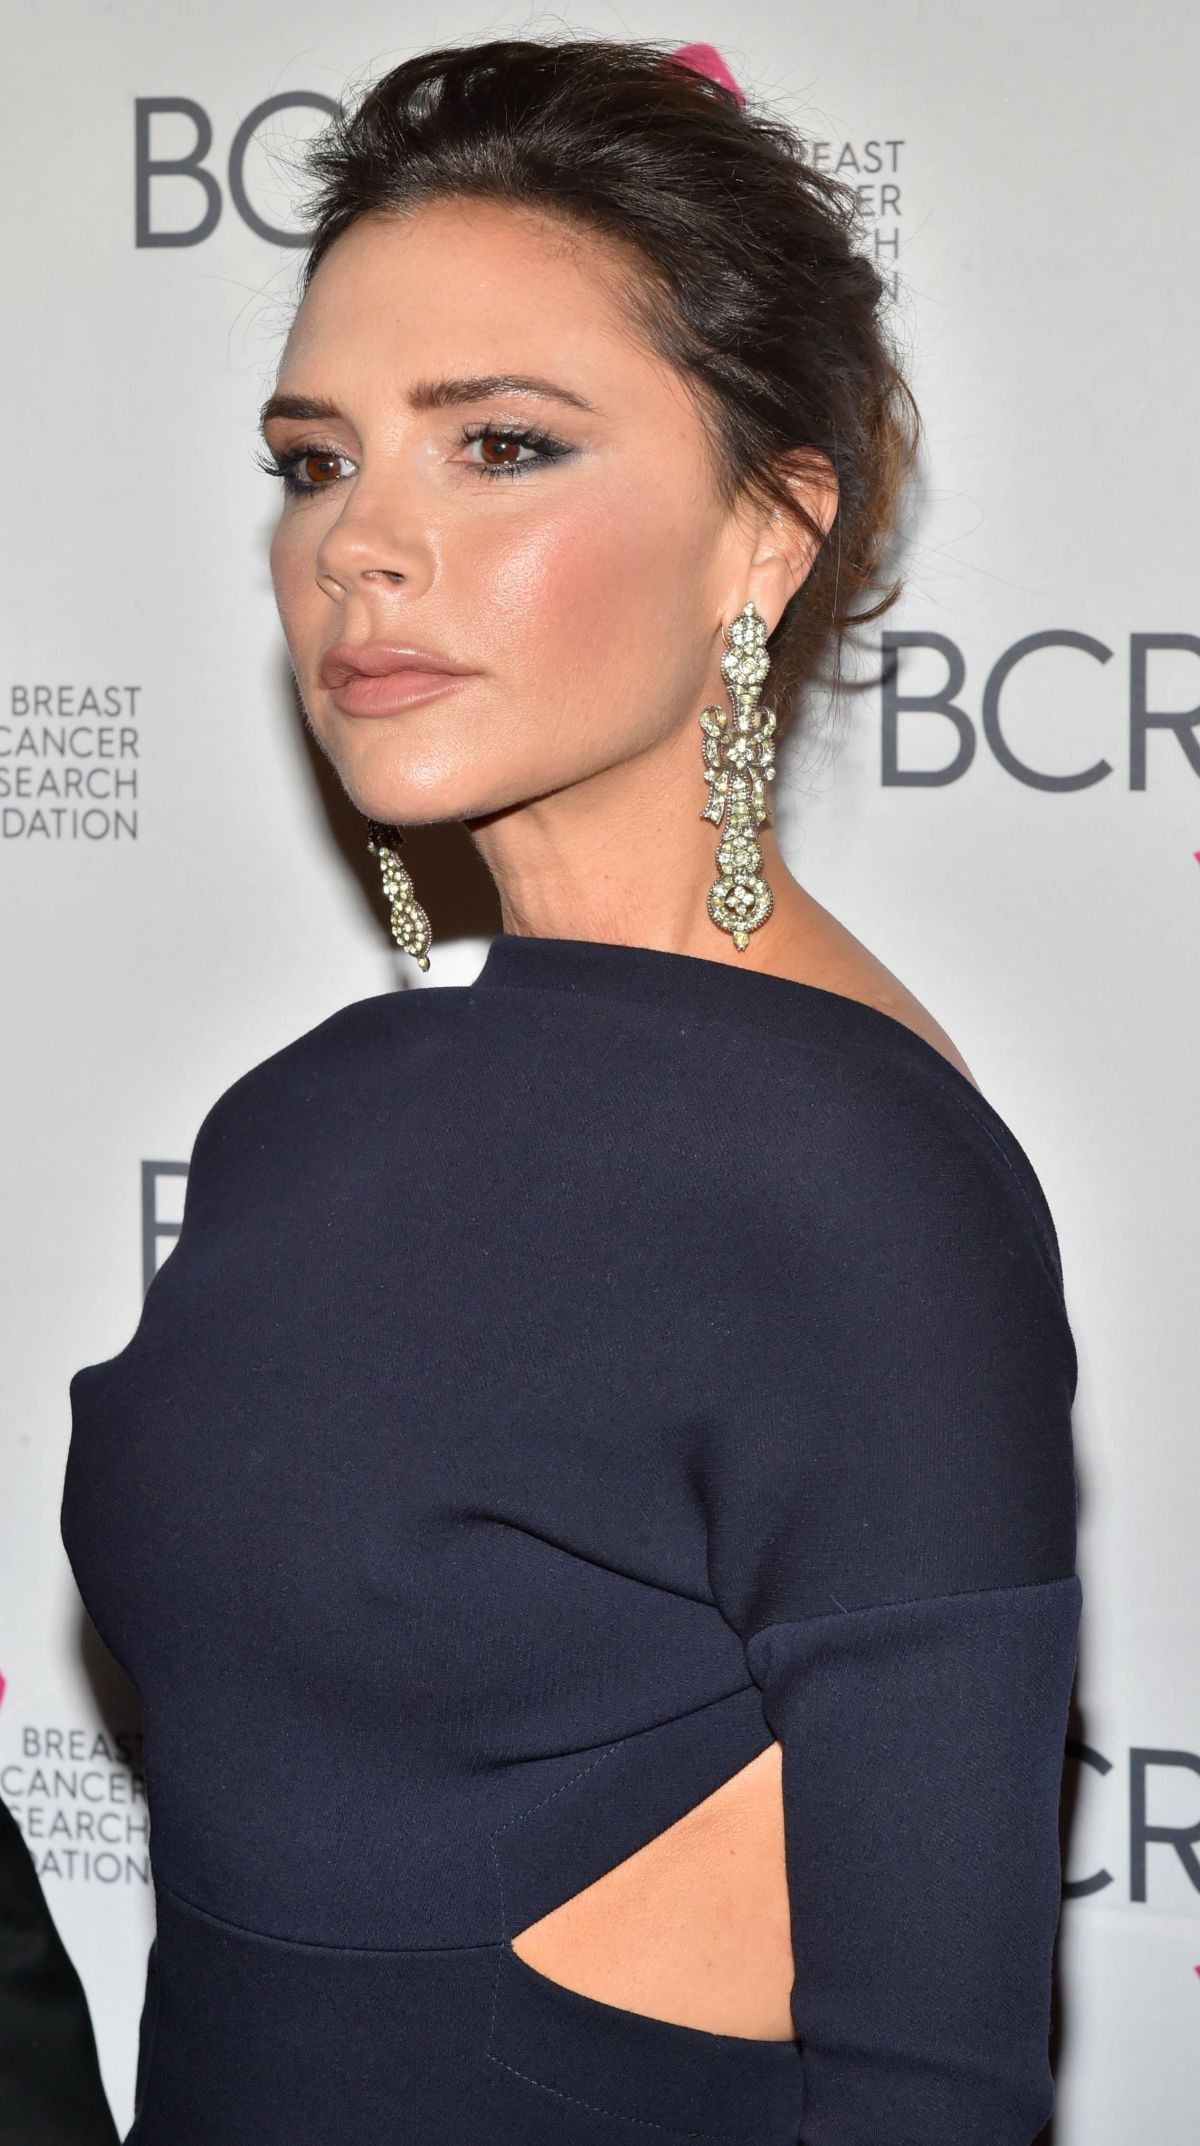 VICTORIA BECKHAM at The Hot Pink Party in New York 05/12/2017 – HawtCelebs